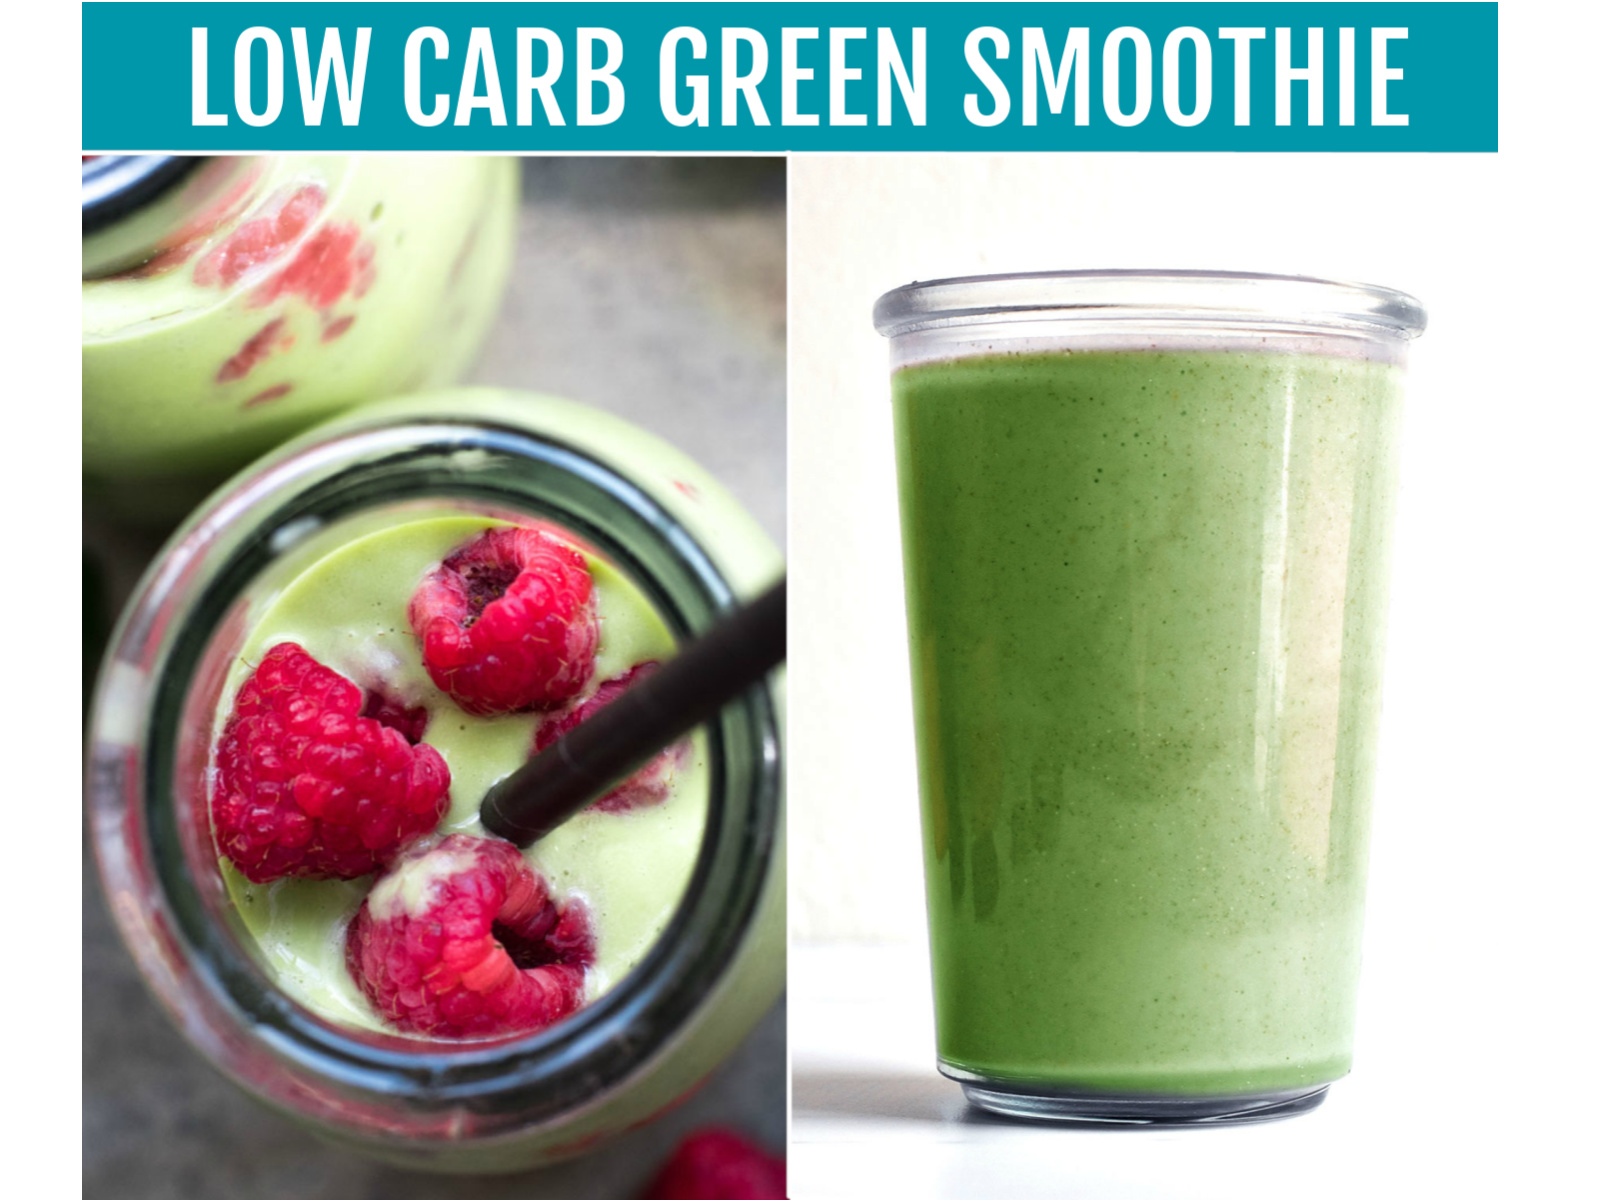 Collage of green low carb smoothie